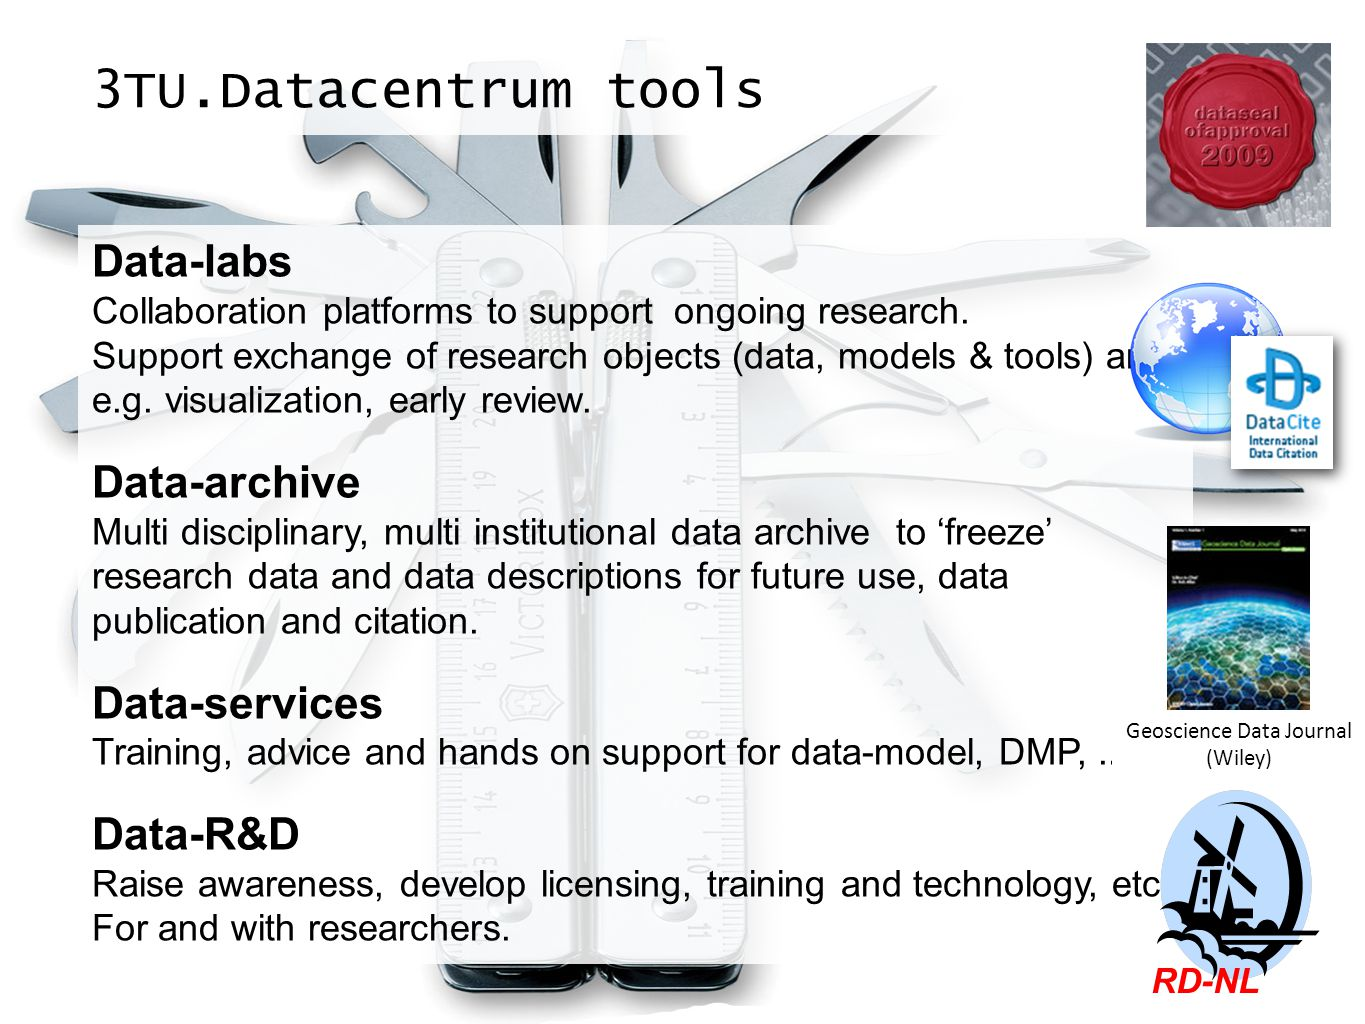 3TU.Datacentrum tools Data-labs Collaboration platforms to support ongoing research. Support exchange of research objects (data, models & tools) and e